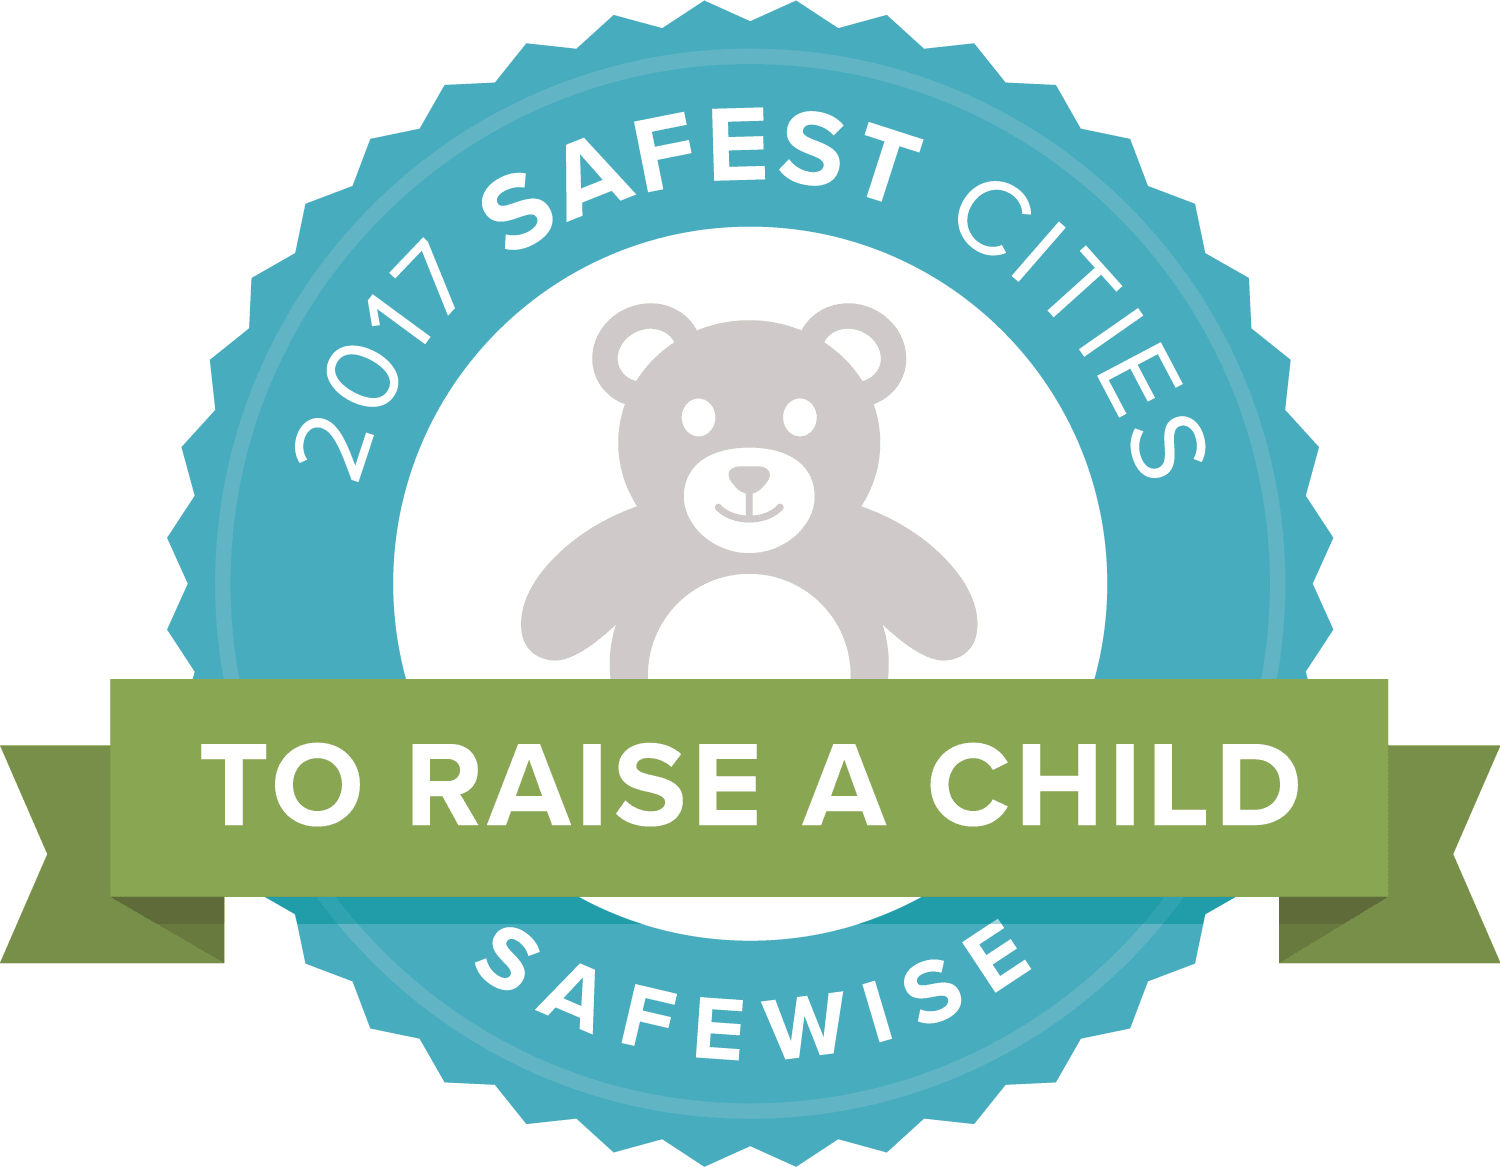 Safewise Safest Cities to Raise a Child Logo